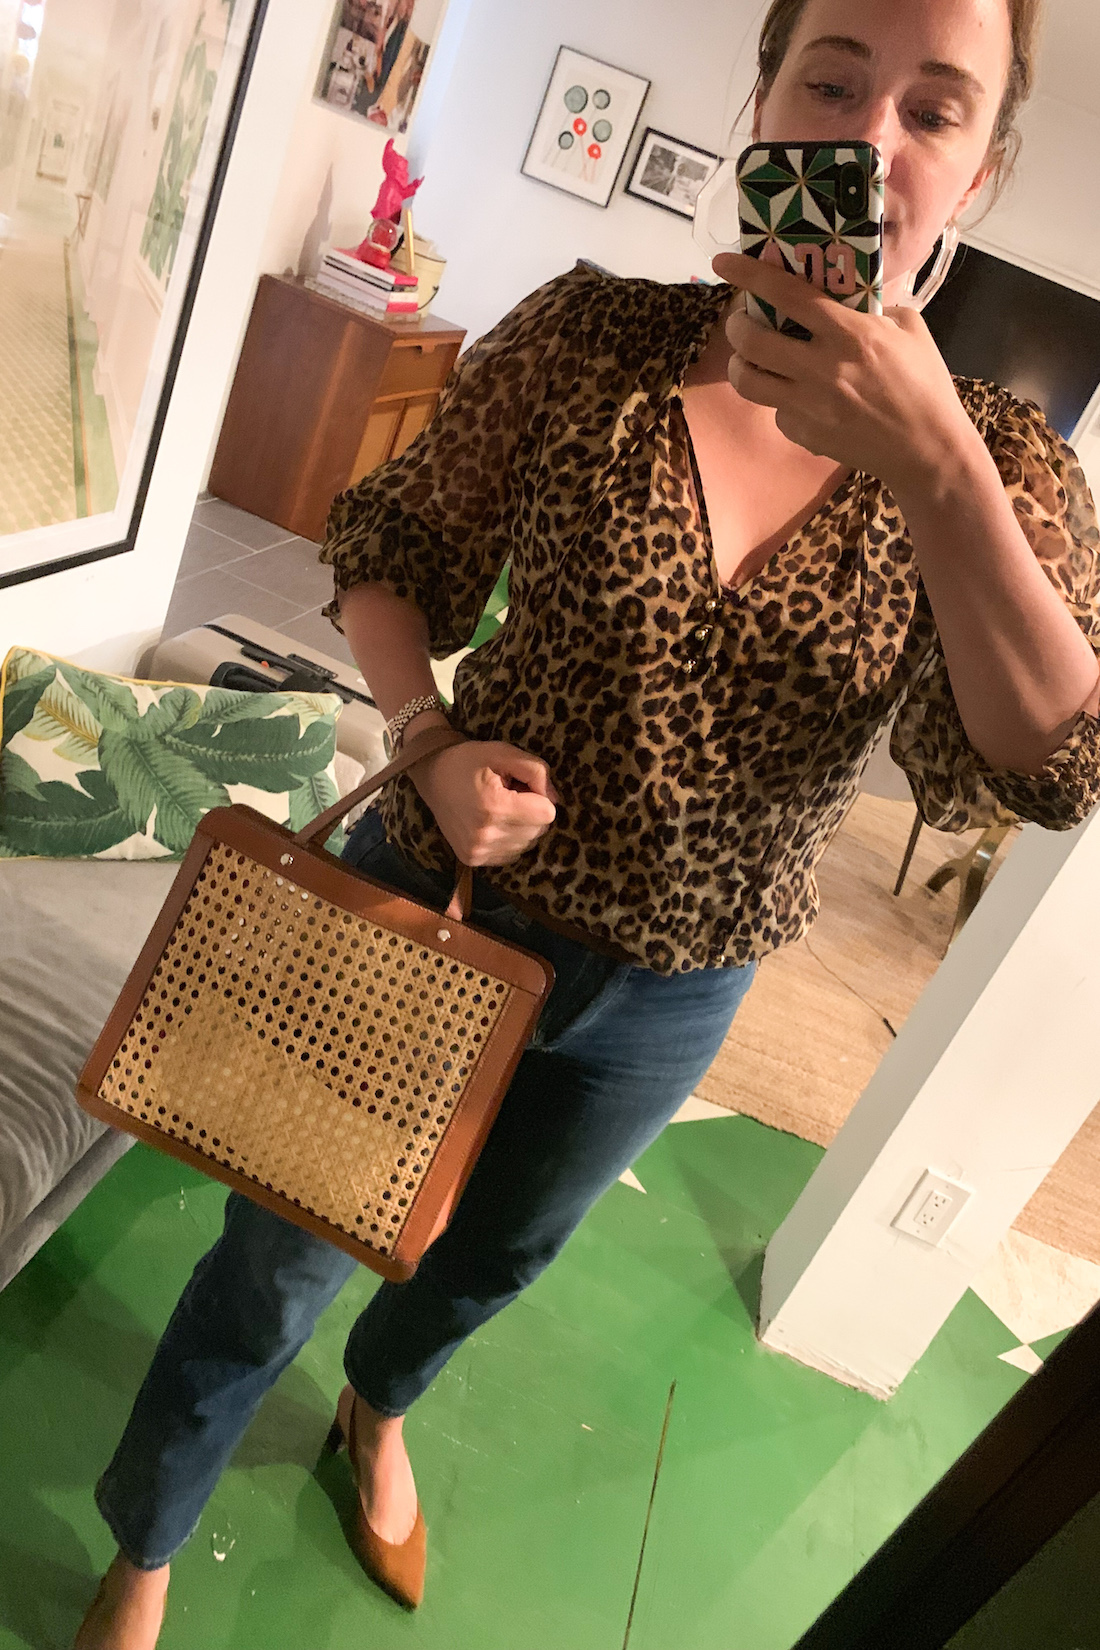 grace wearing jeans and a cheetah blouse